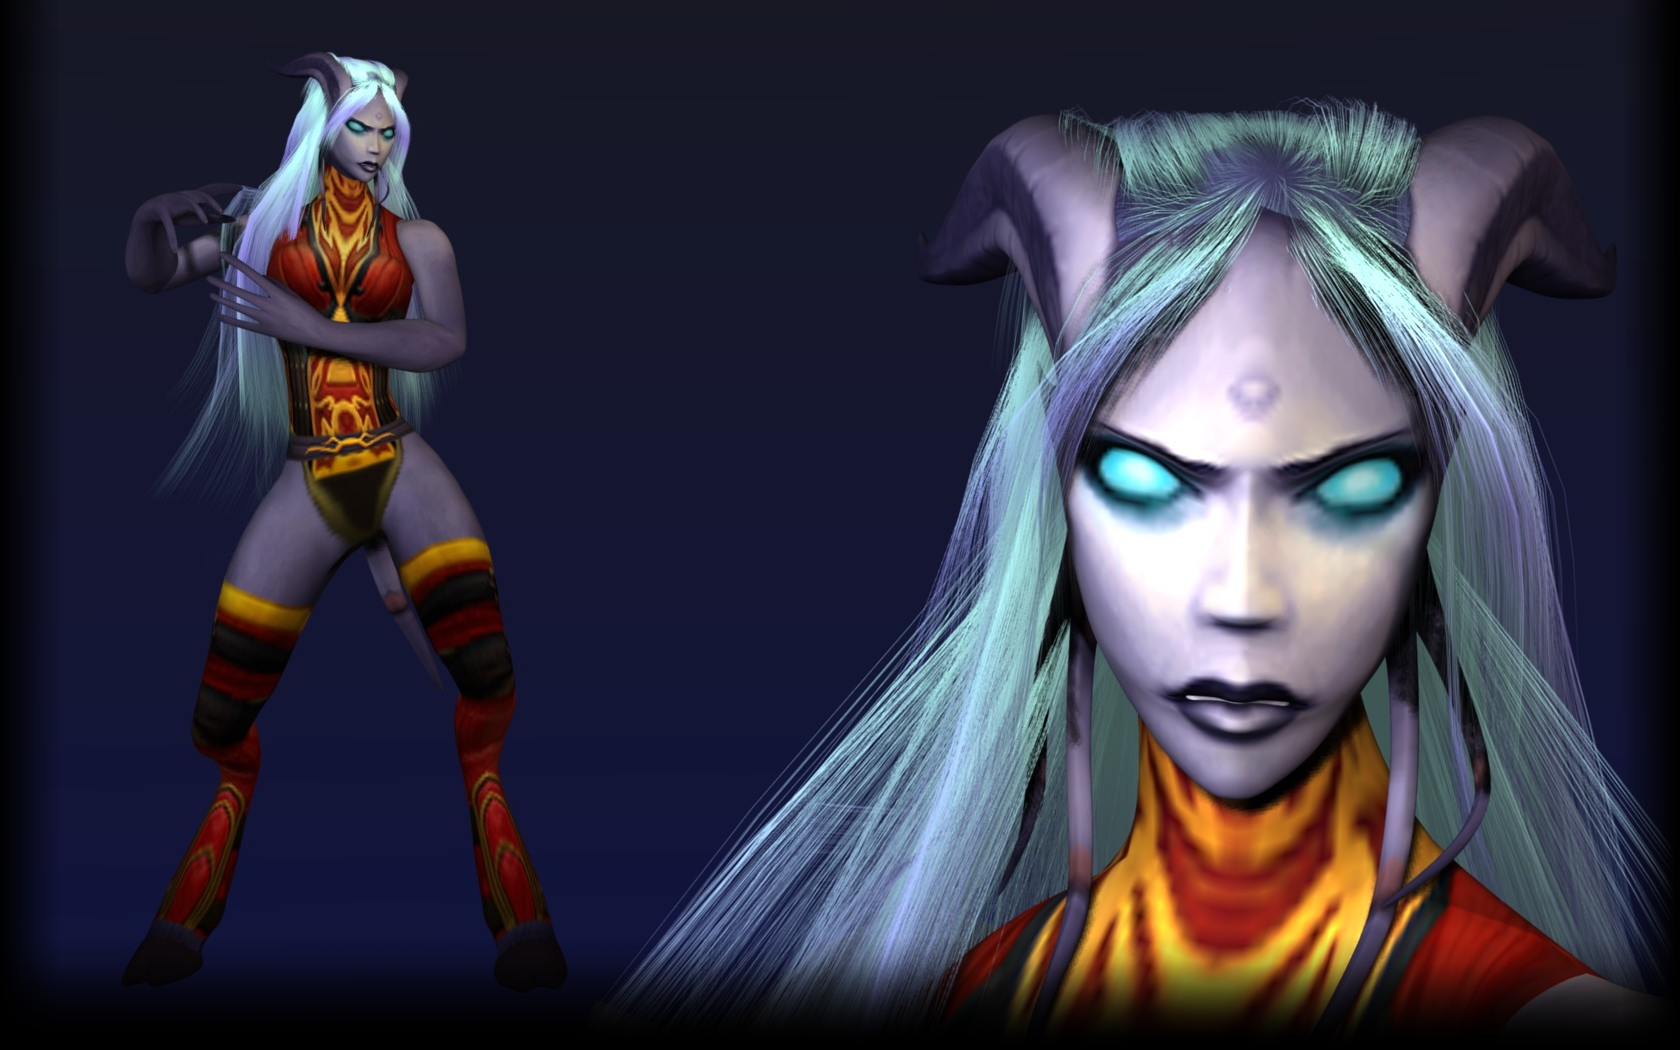 WoW hottest draenei exposed pics